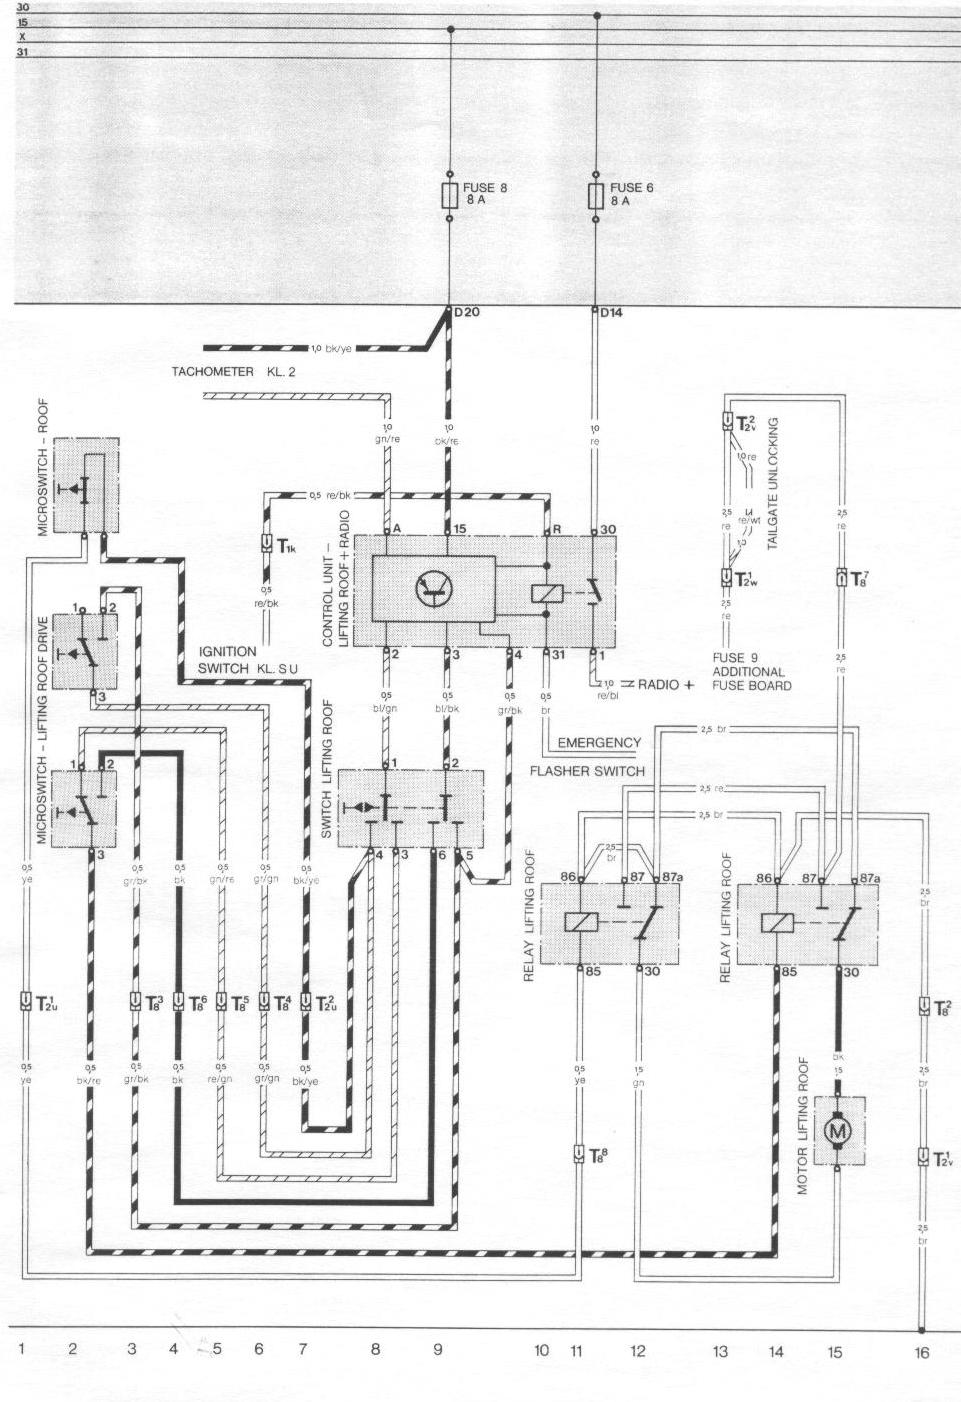 944_84_sunroof pelican parts porsche 924 944 electrical diagrams porsche 944 wiring diagram pdf at aneh.co